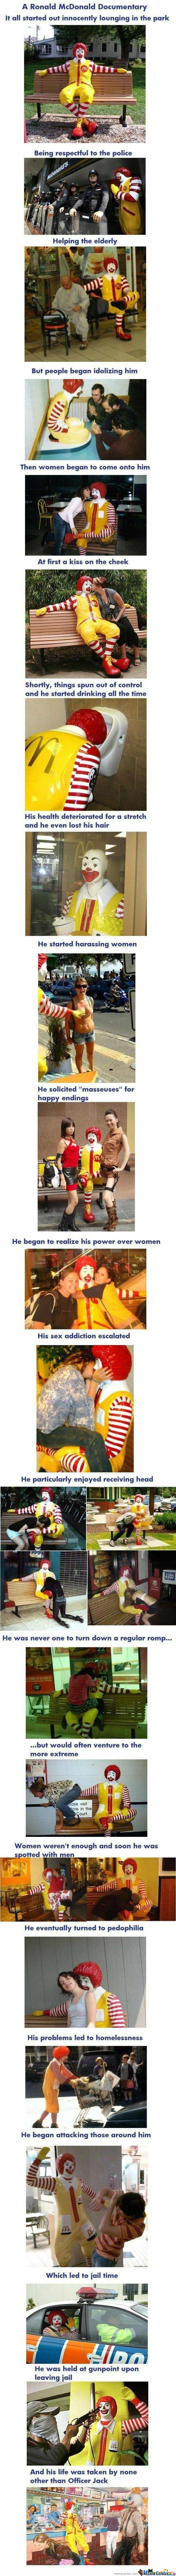 The life of Ronald Macdonalds